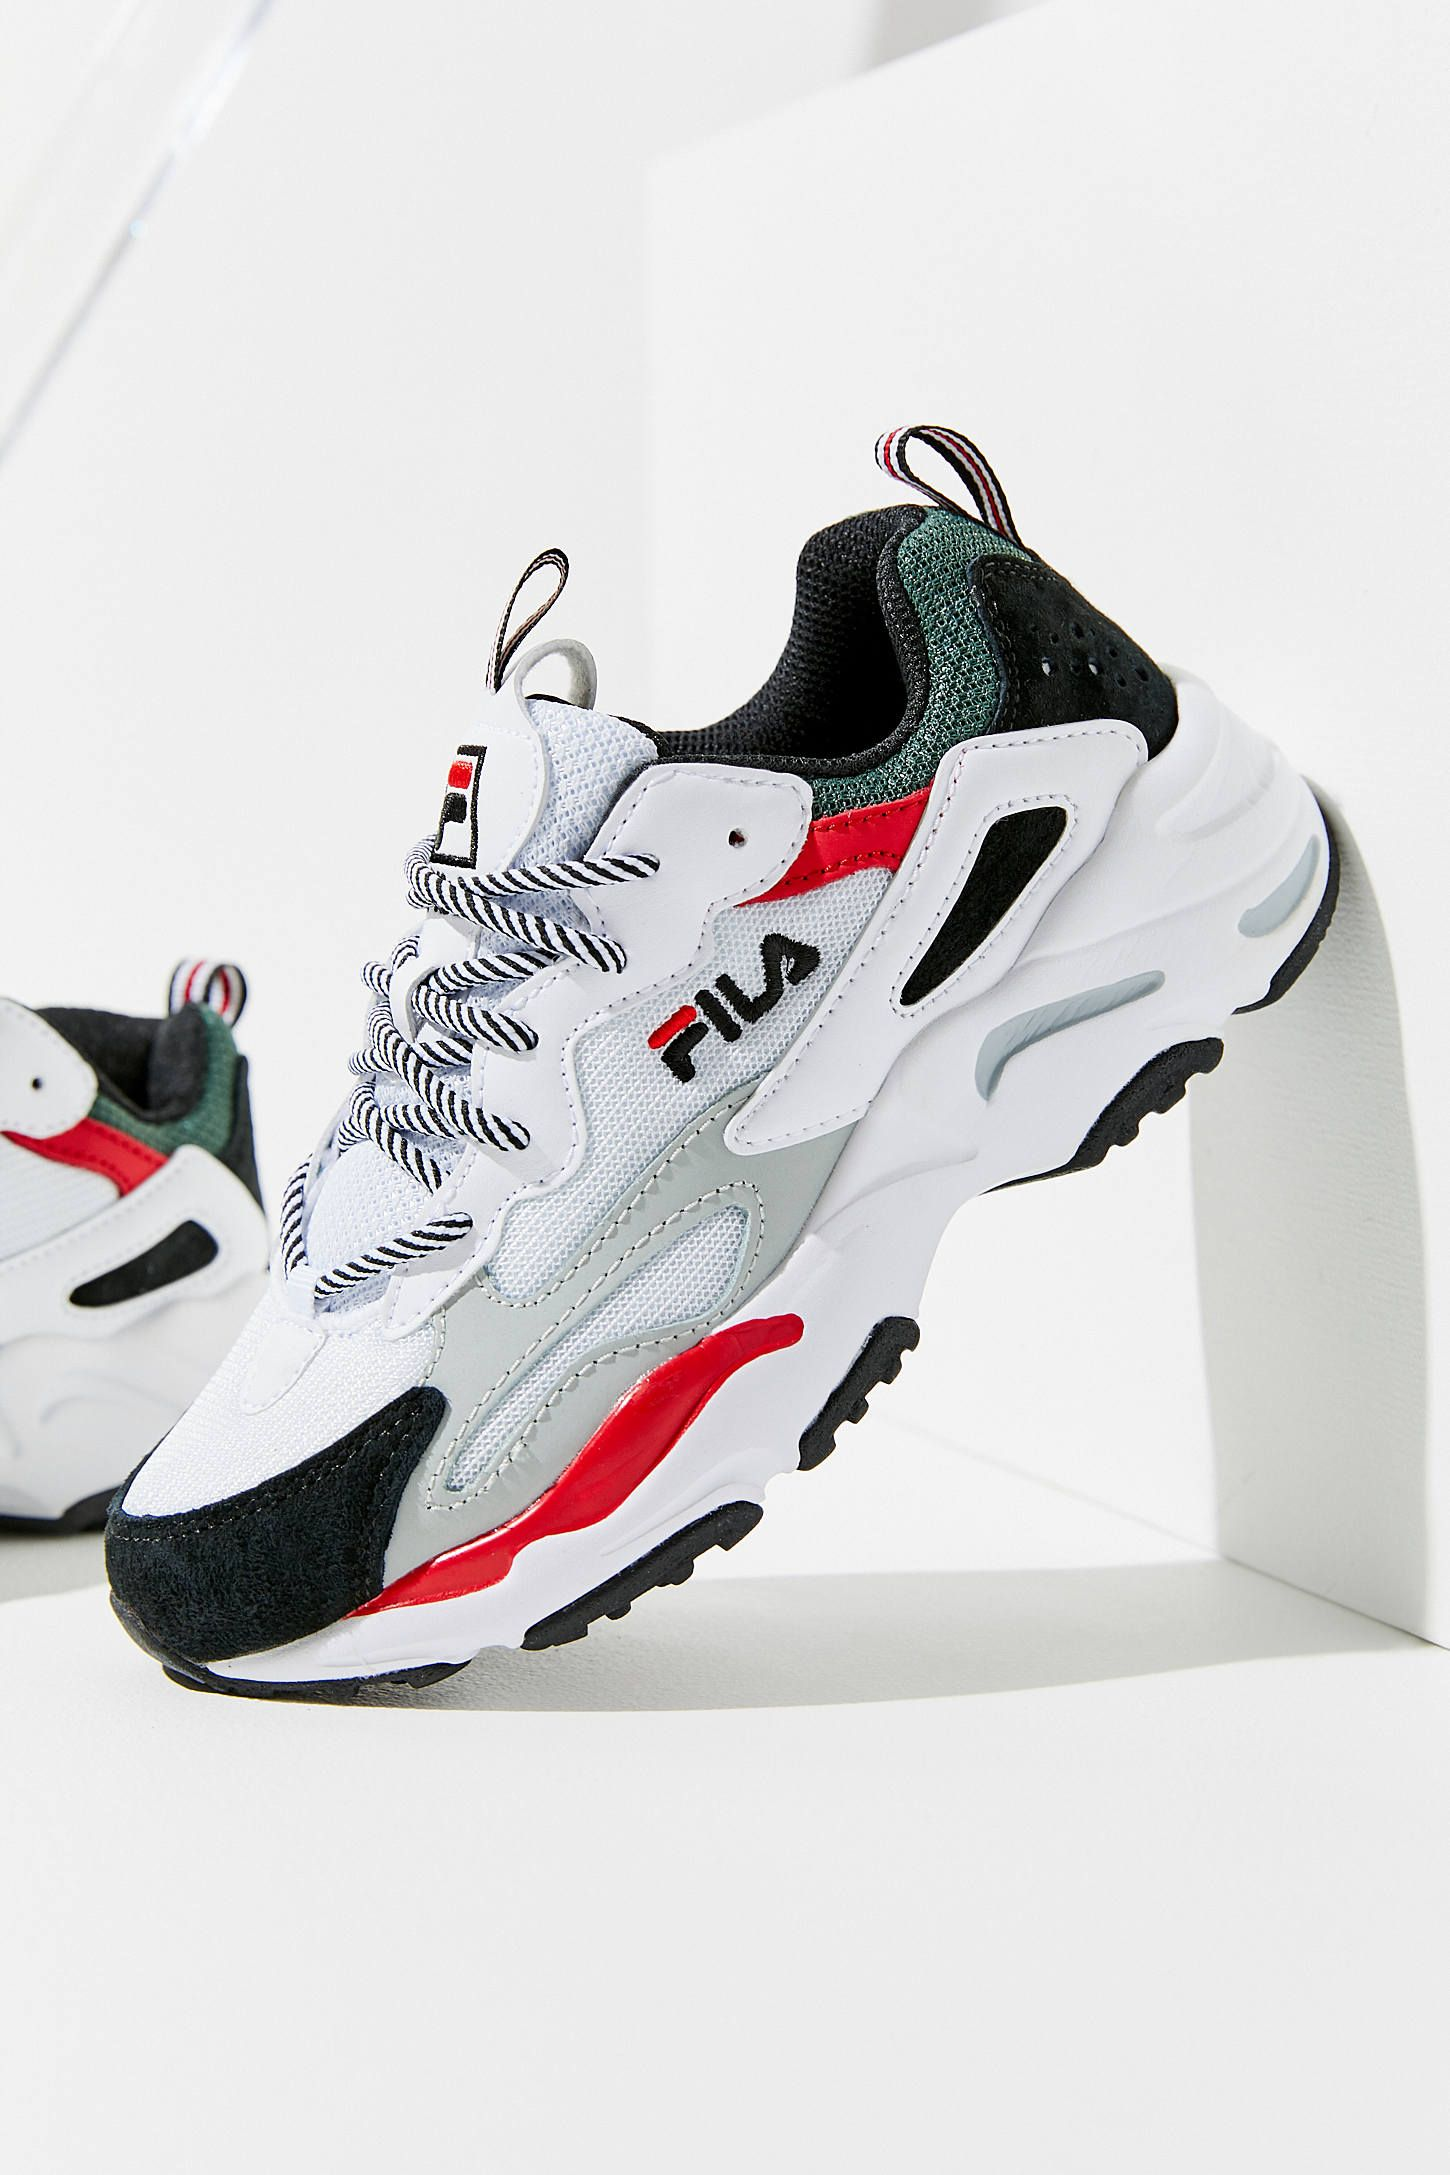 FILA Ray Tracer Sneaker | Cute womens shoes, Sneakers